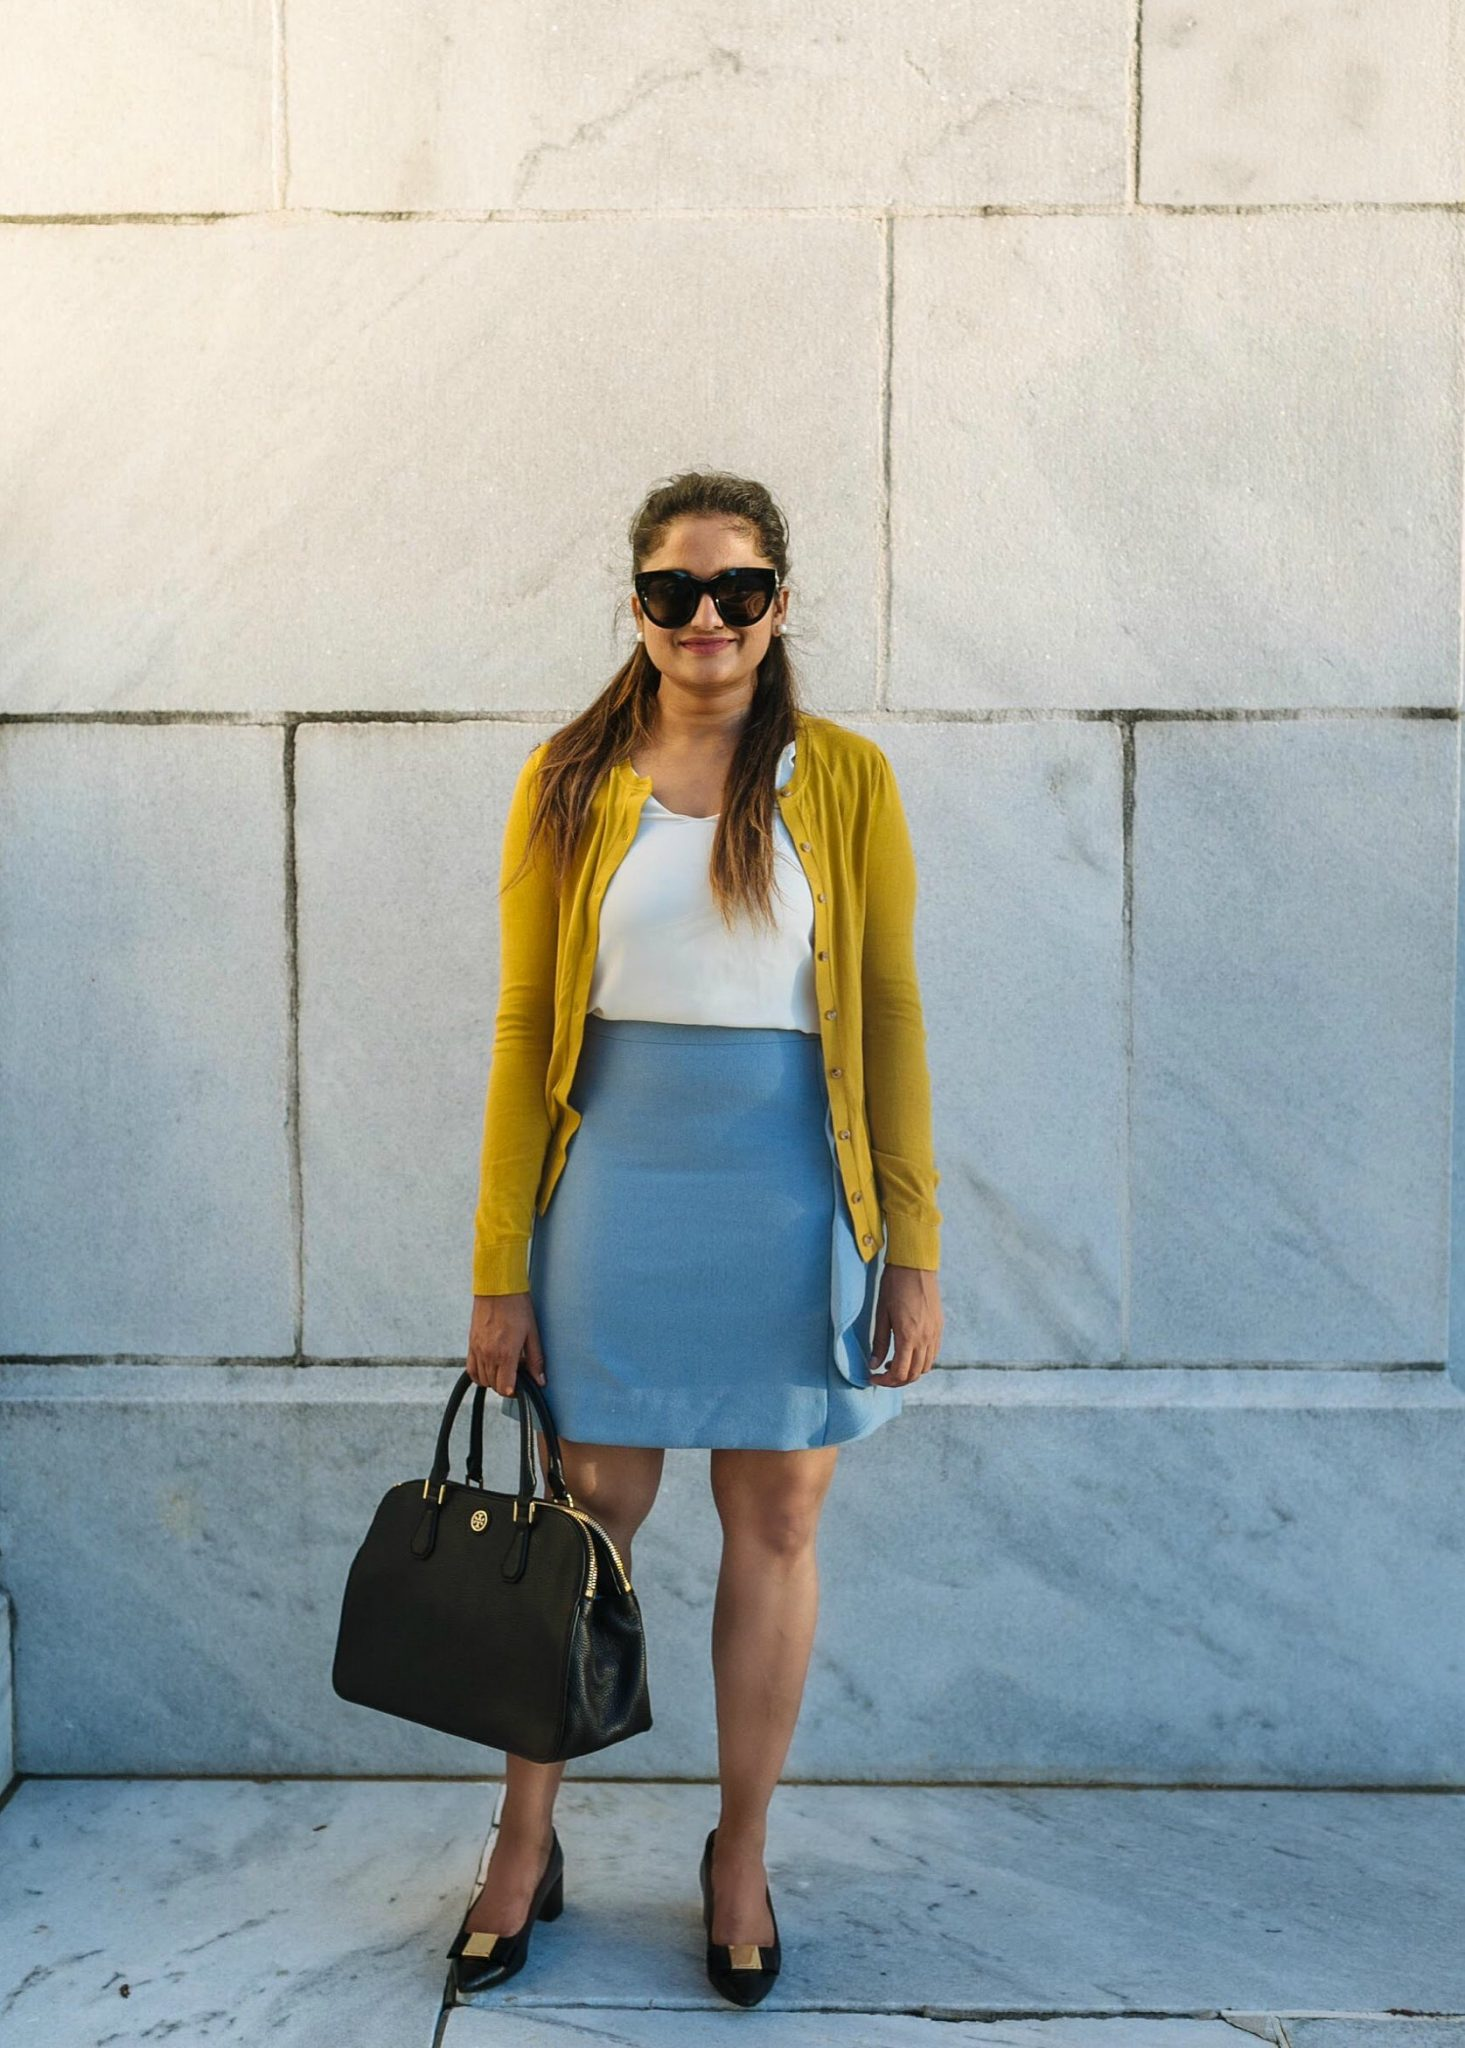 How to wear yellow cardigan to work | 20 Outfit Fall colorful capsule wardrobe |Colorful Fall Work Outfits featured by popular US modest fashion blogger, Dreaming Loud